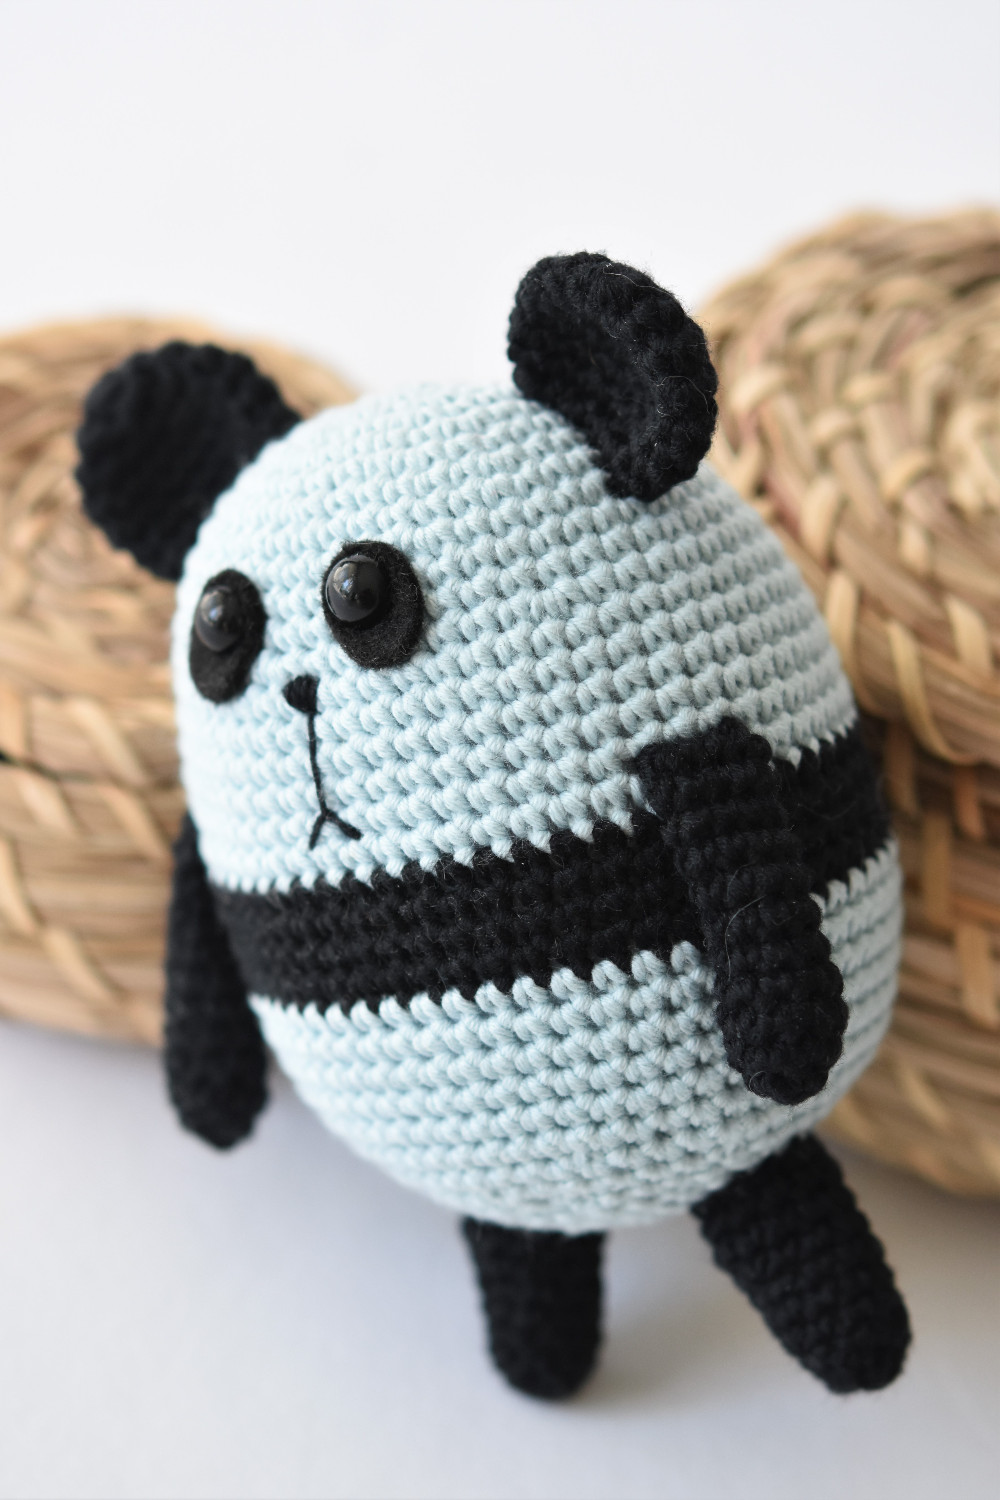 Best Amigurumi Crochet Elephant Patterns - Amigurumi Crochet Patterns | 1500x1000